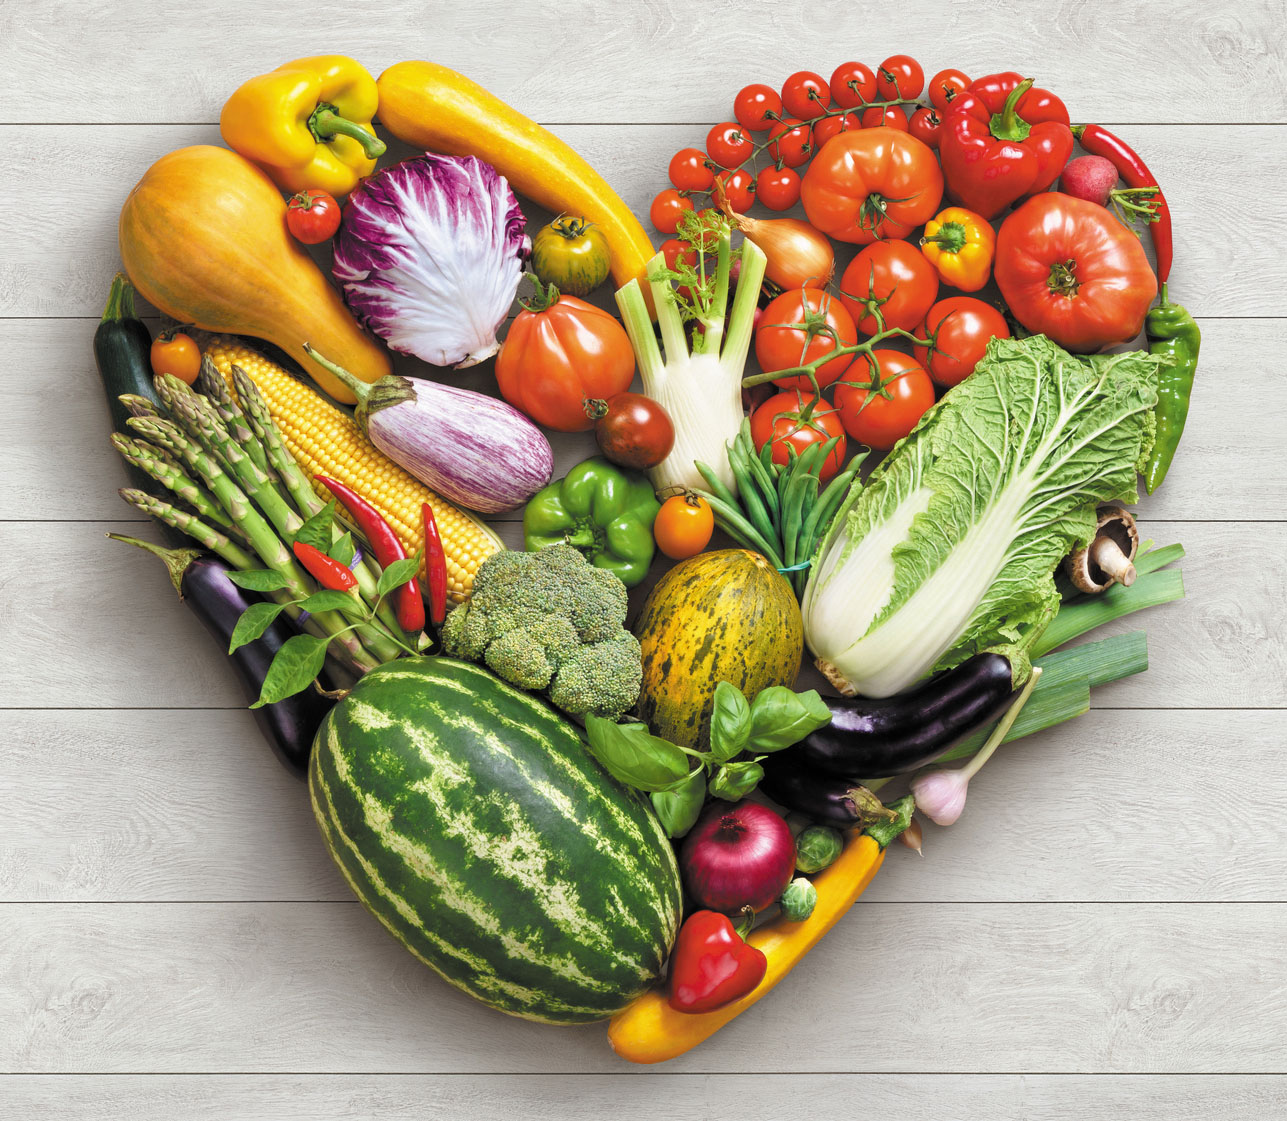 Heart symbol. Vegetables diet concept. Food photography of heart made from different vegetables on white wooden table. High resolution product.